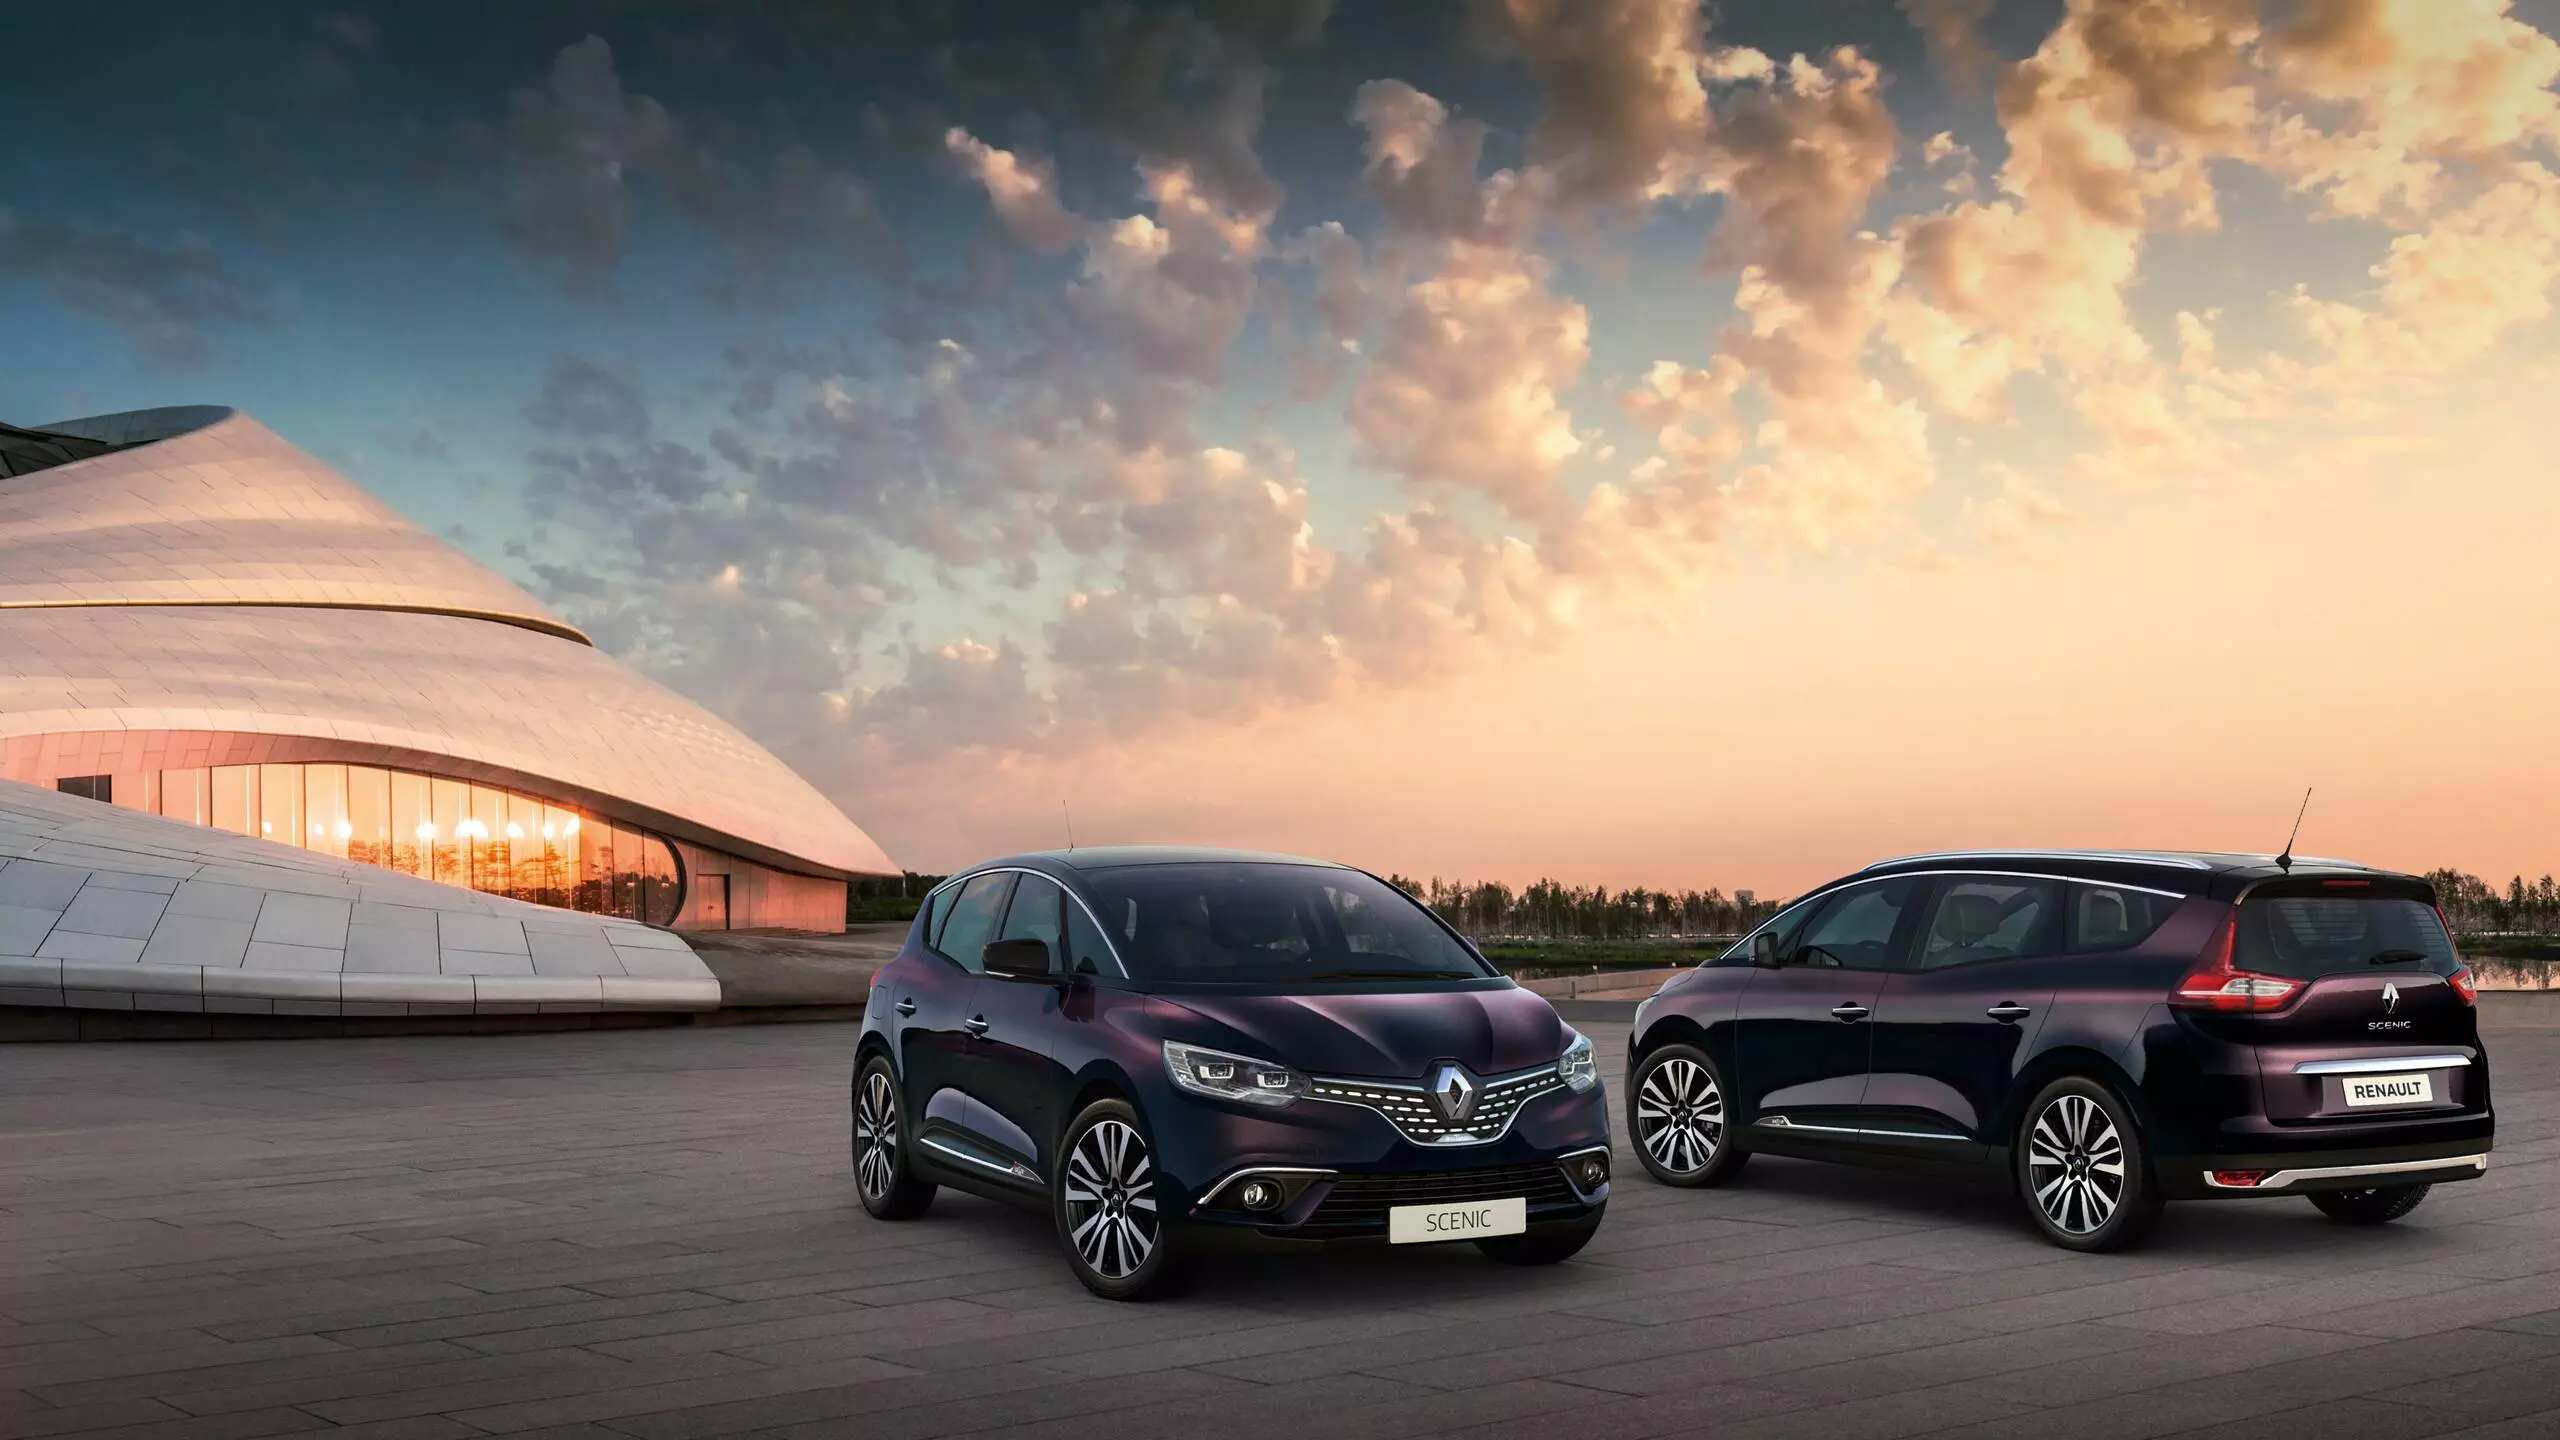 renault-scenic4-ph1-exterior-lifestyle-004.jpg.ximg.largex2.png